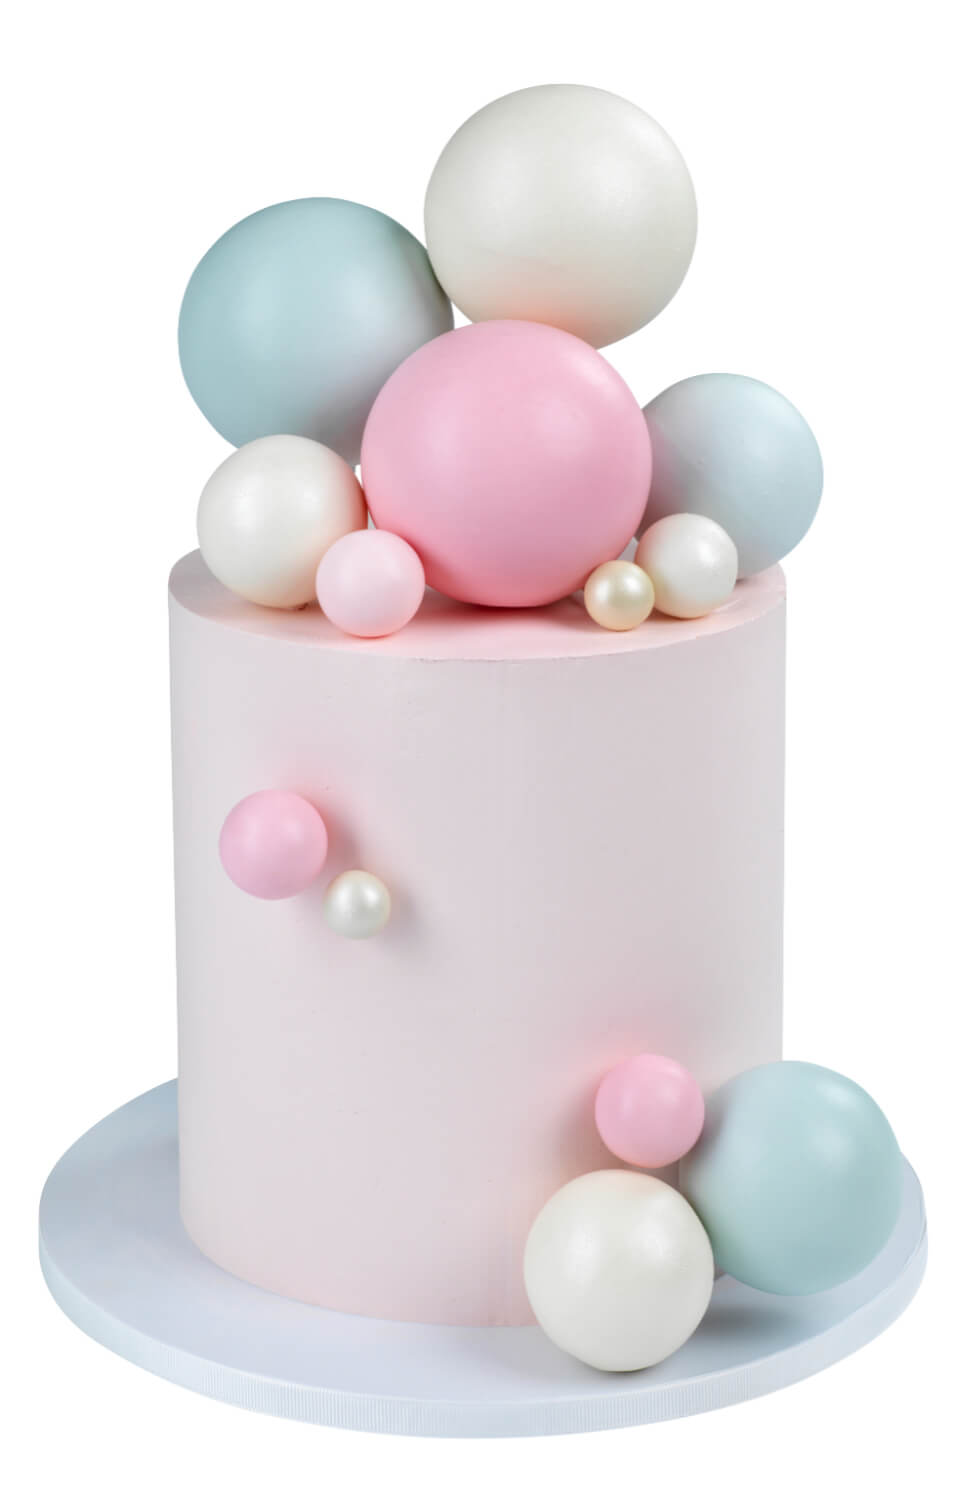 Cakes by Hancock - Balloons